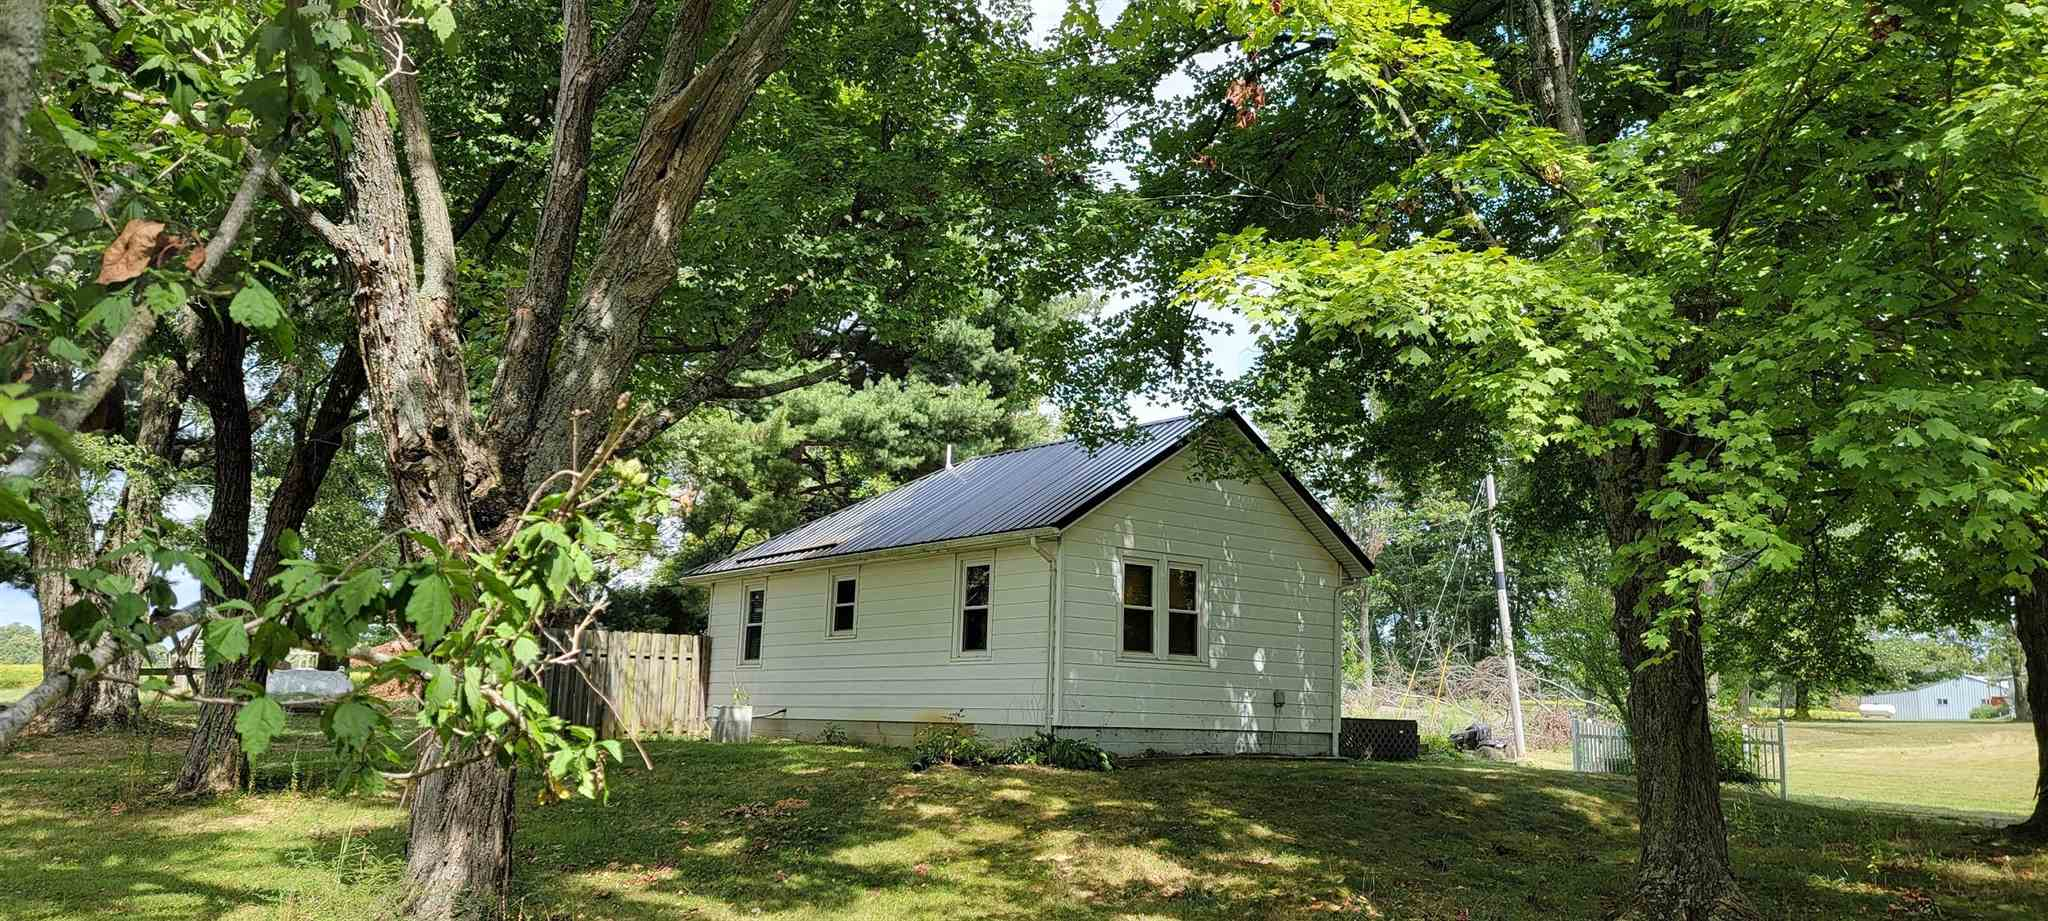 1475 State Road 645, Loogootee, IN 47553